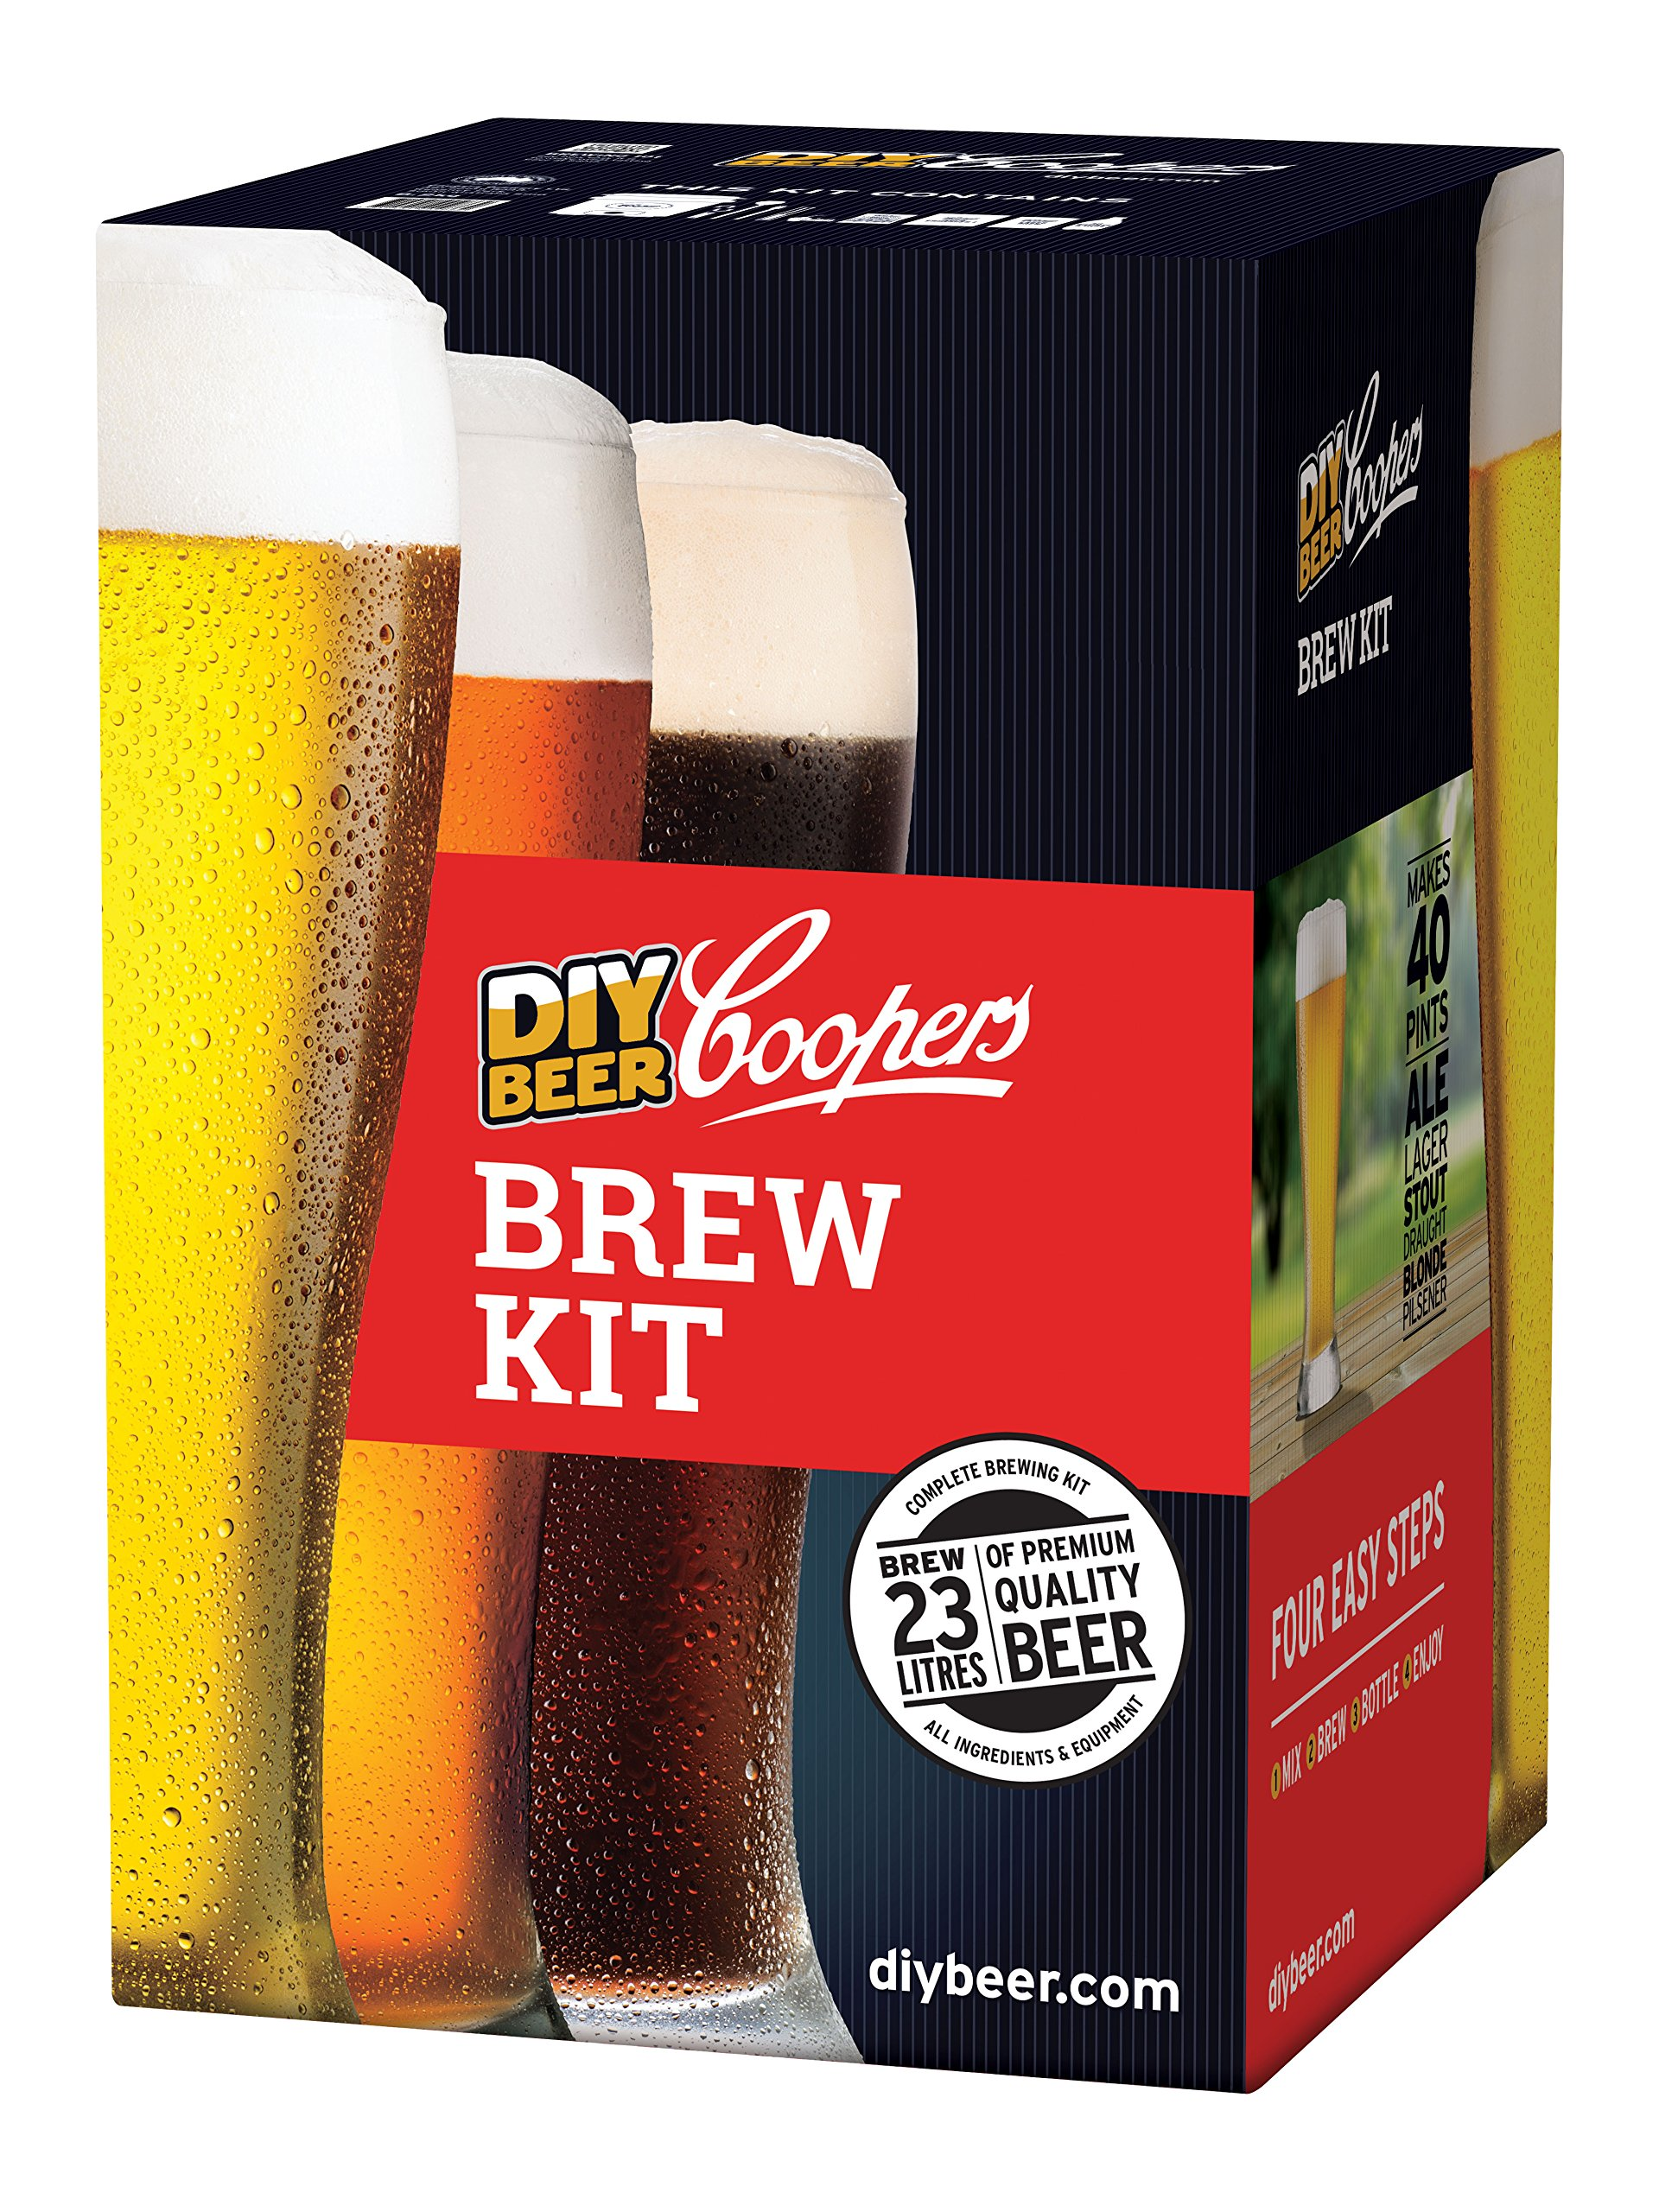 Coopers DIY Beer Home Brewing 6 Gallon All Inclusive Craft Beer Making Kit with Patented Brewing Fermenter, Beer Hydrometer, Brewing Ingredients, Bottles and Brewing Accessories by Coopers (Image #6)